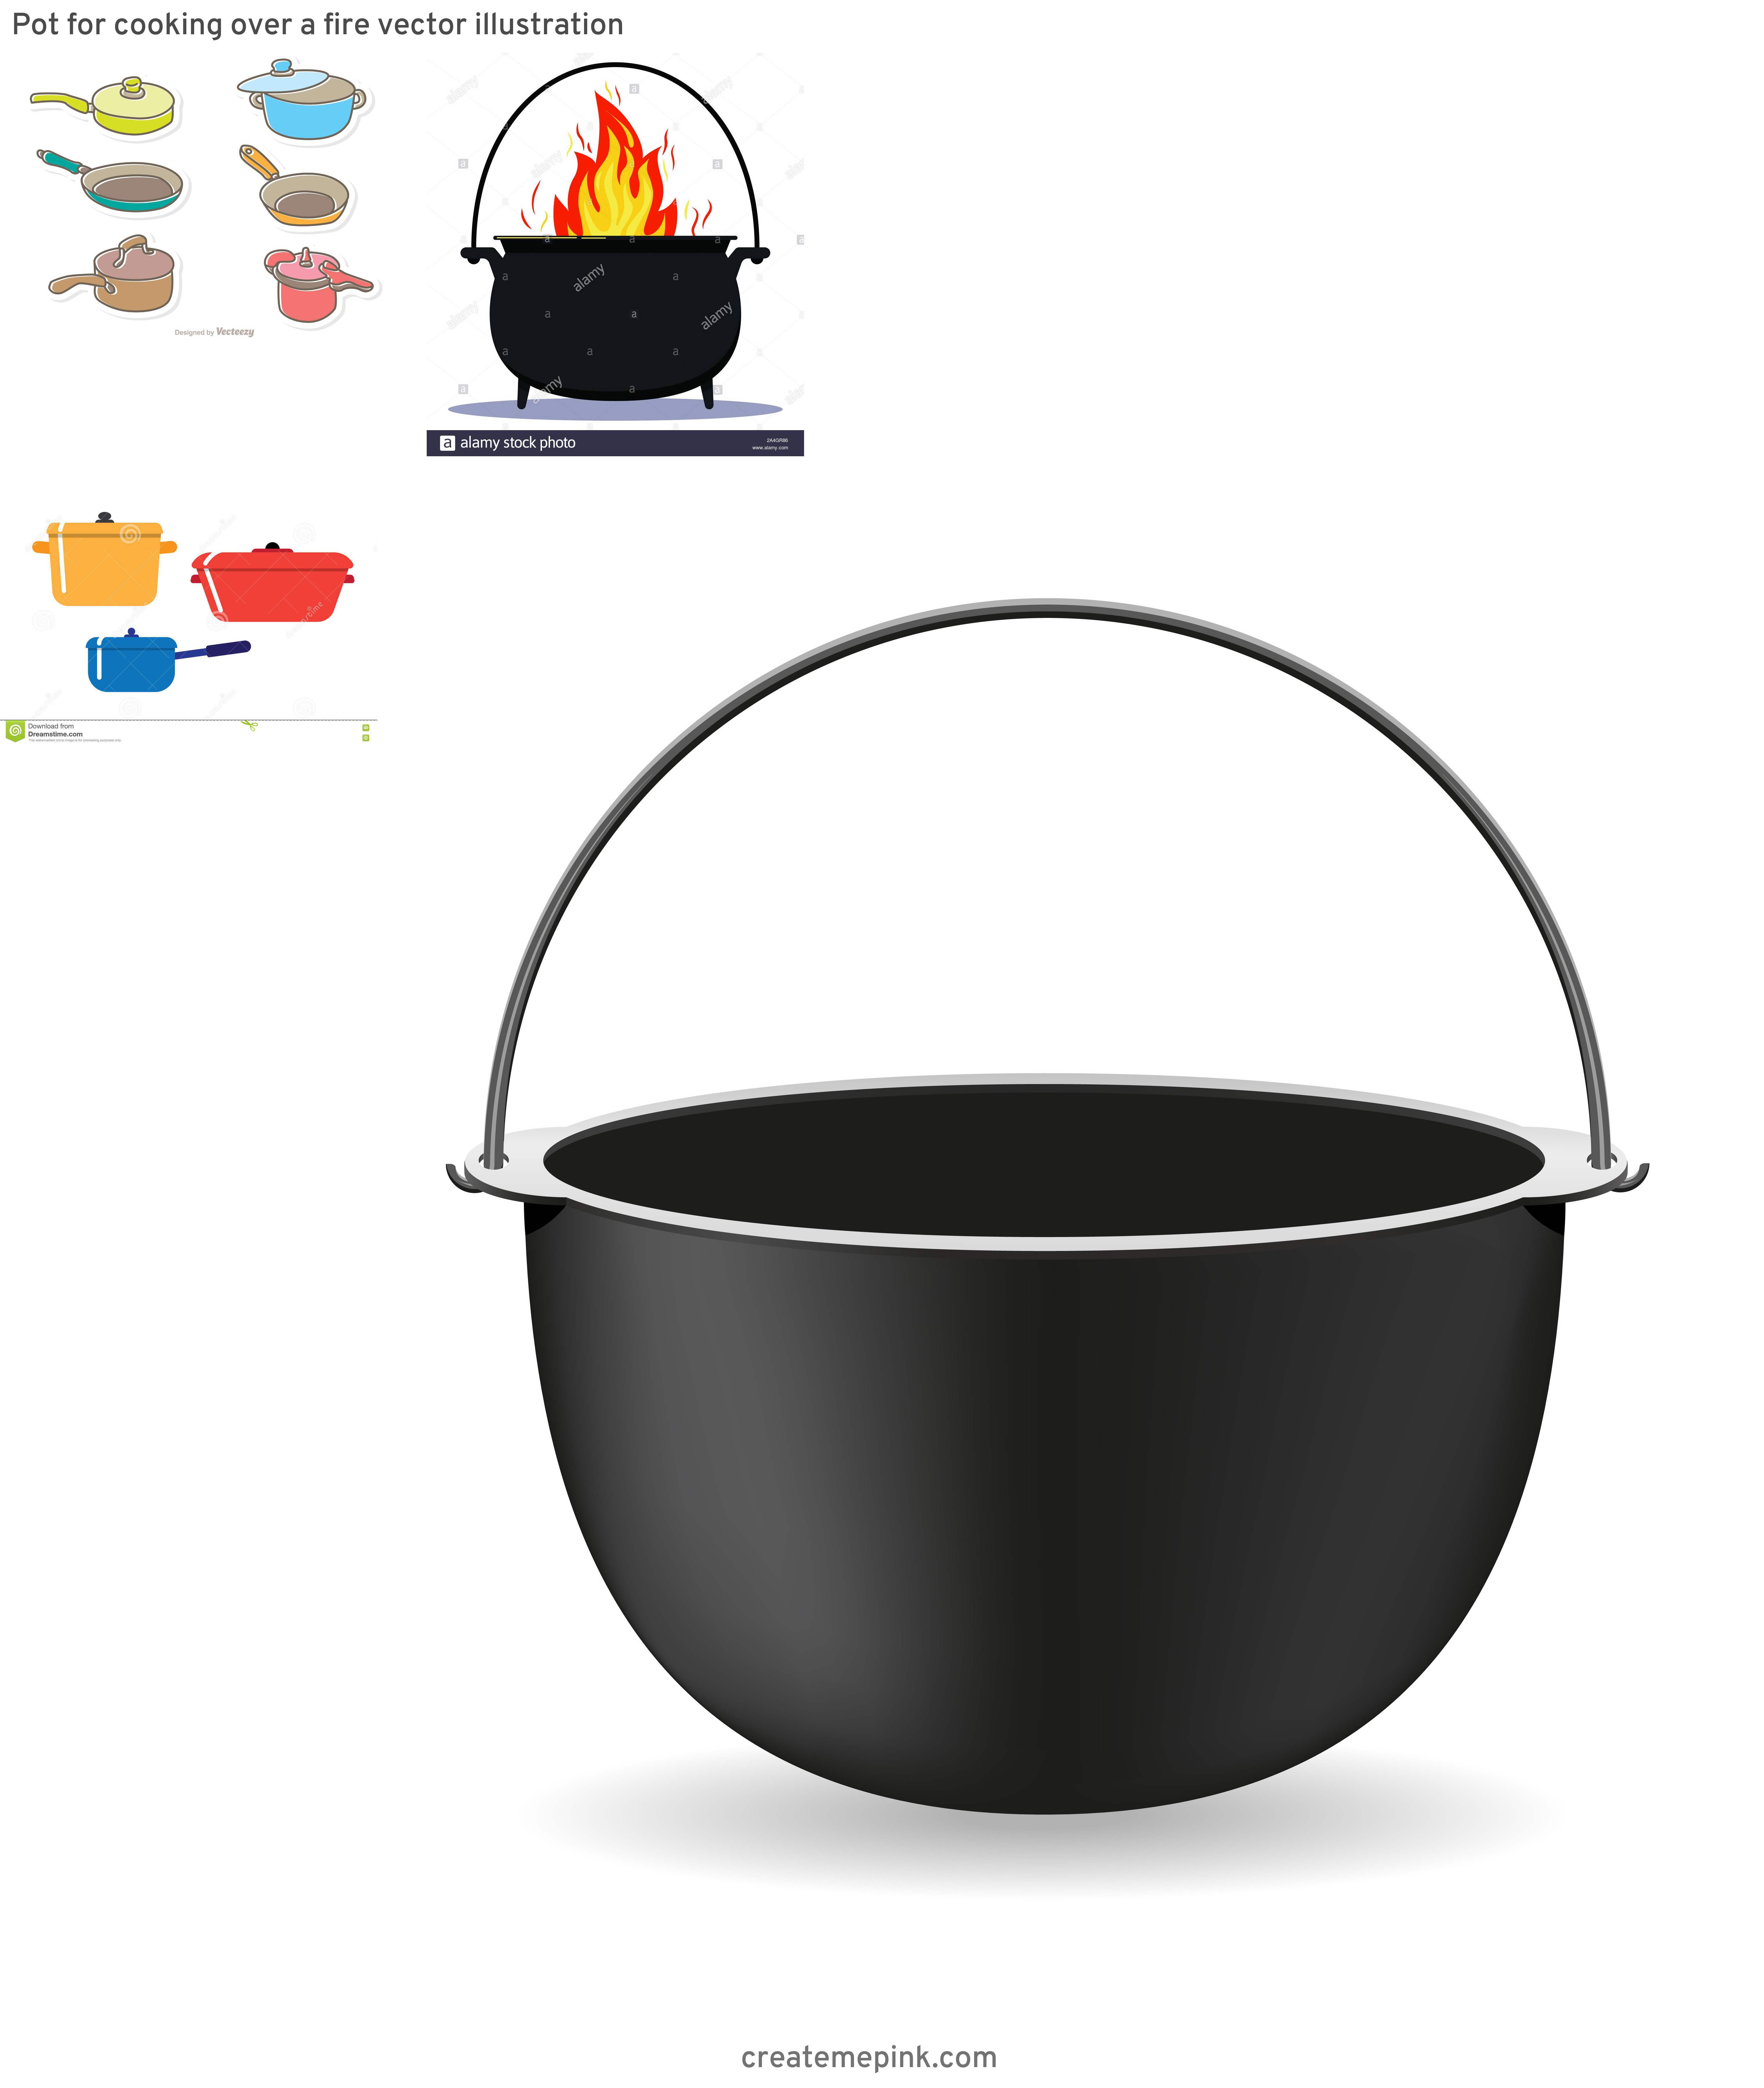 Cook Pot Vector: Pot For Cooking Over A Fire Vector Illustration